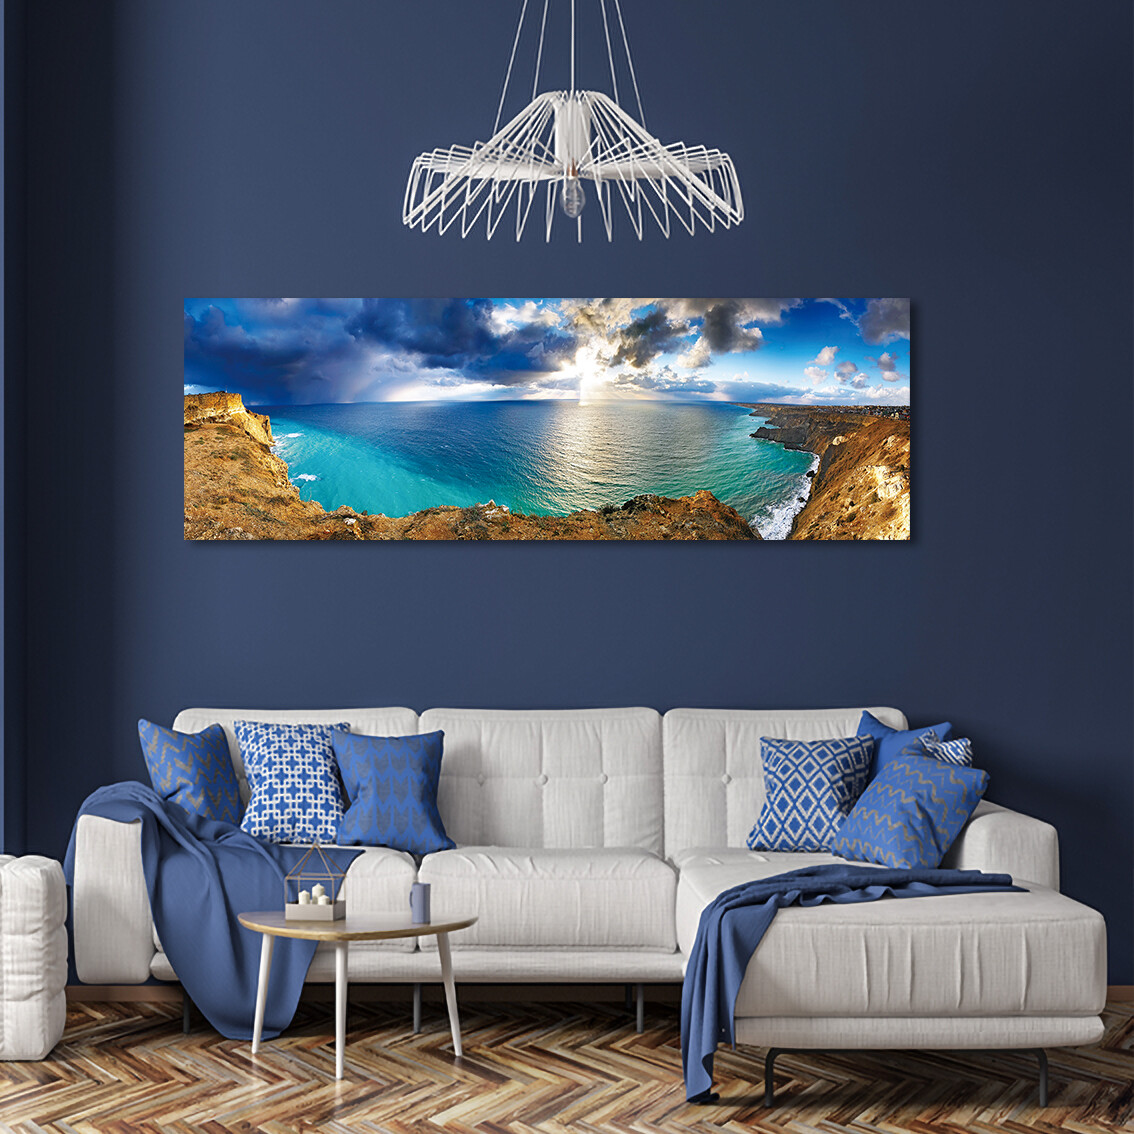 Blue Ocean - Modern Luxury Wall art Printed on Acrylic Glass - Frameless and Ready to Hang